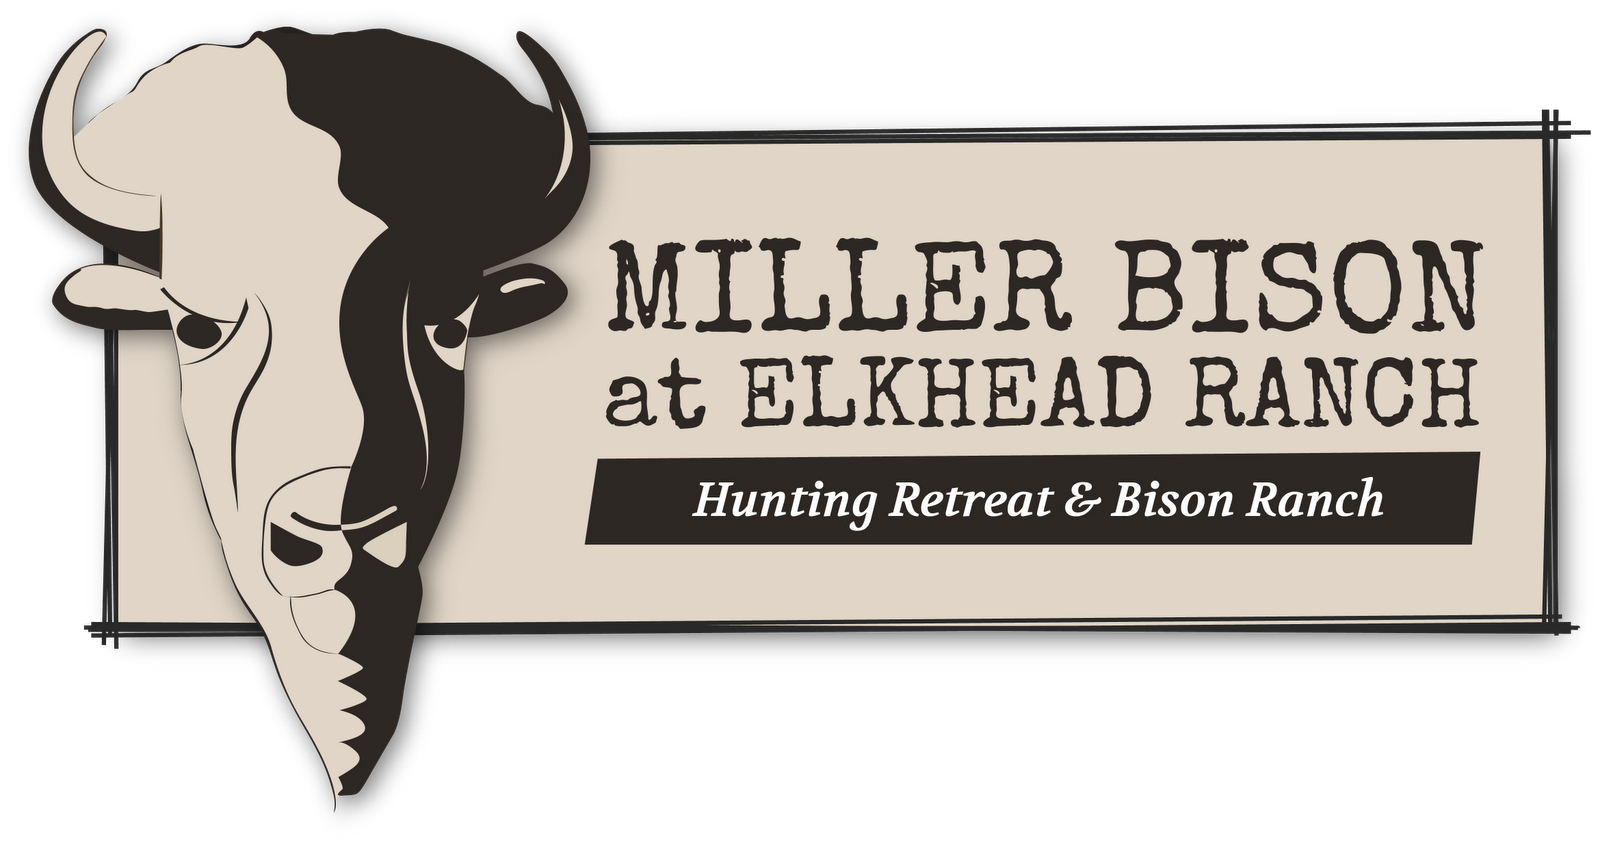 Life on a Bison Ranch & Hunting Retreat